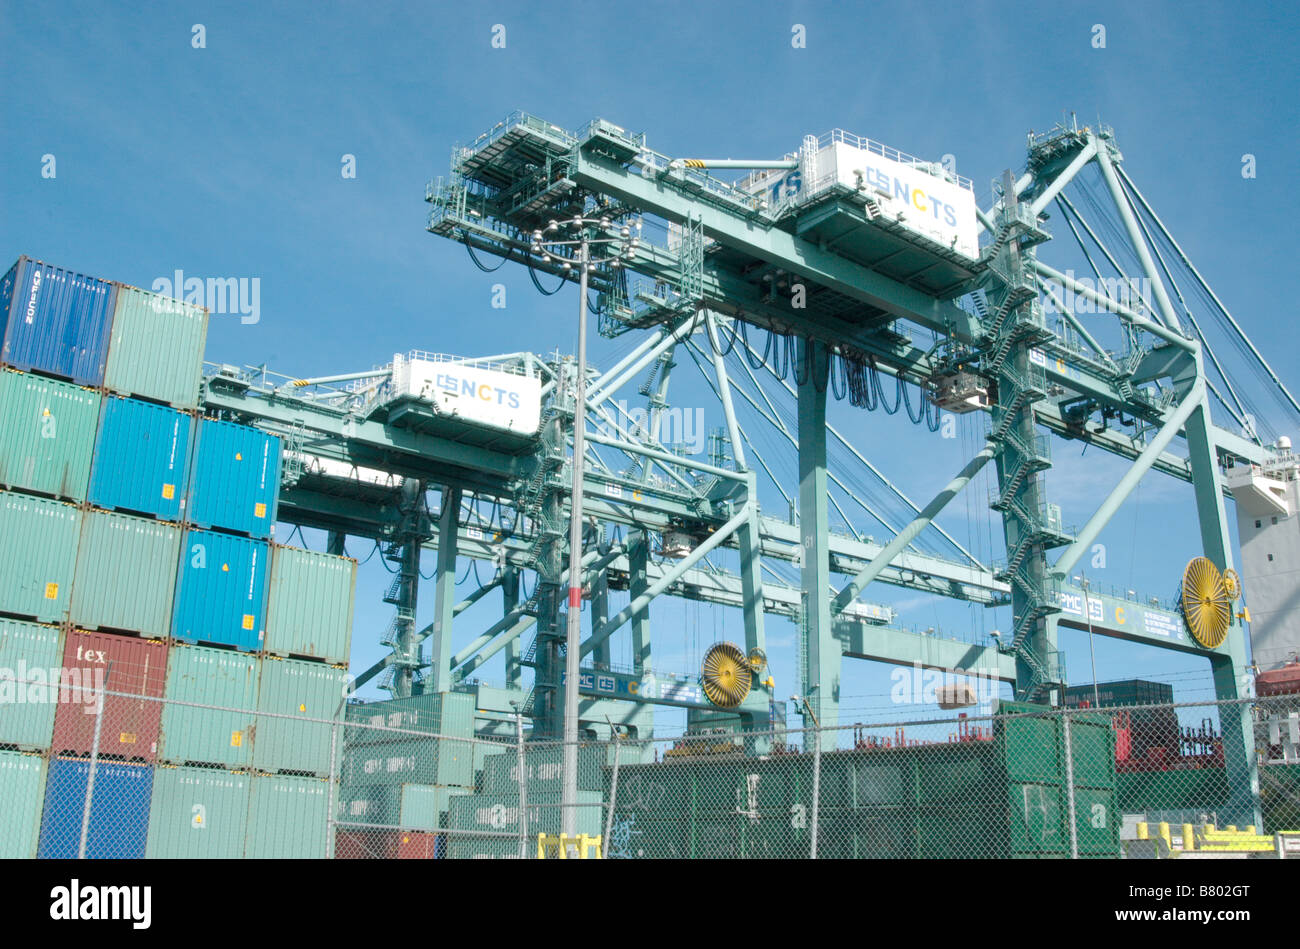 Cargo carriers loading and unloading a group of cargo containers - Stock Image